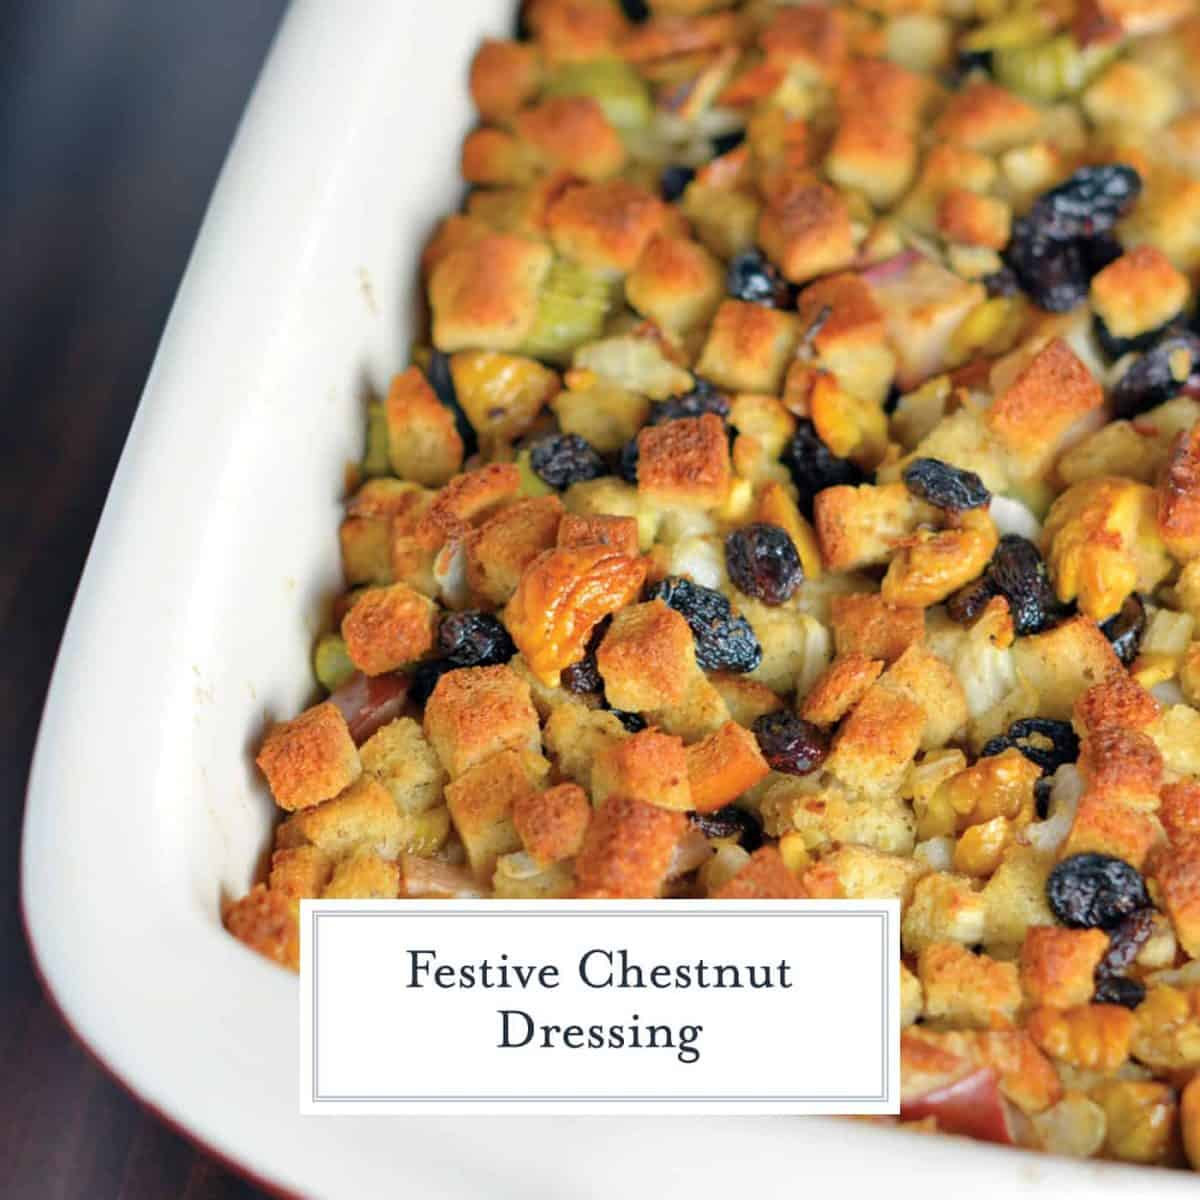 Roasted Chestnut Dressing is a rich and buttery stuffing recipe using roasted chestnuts, apples and raisins. The perfect holiday side dish! #chestnutrecipes #chestnutstuffing #chestnutdressing www.savoryexperiments.com